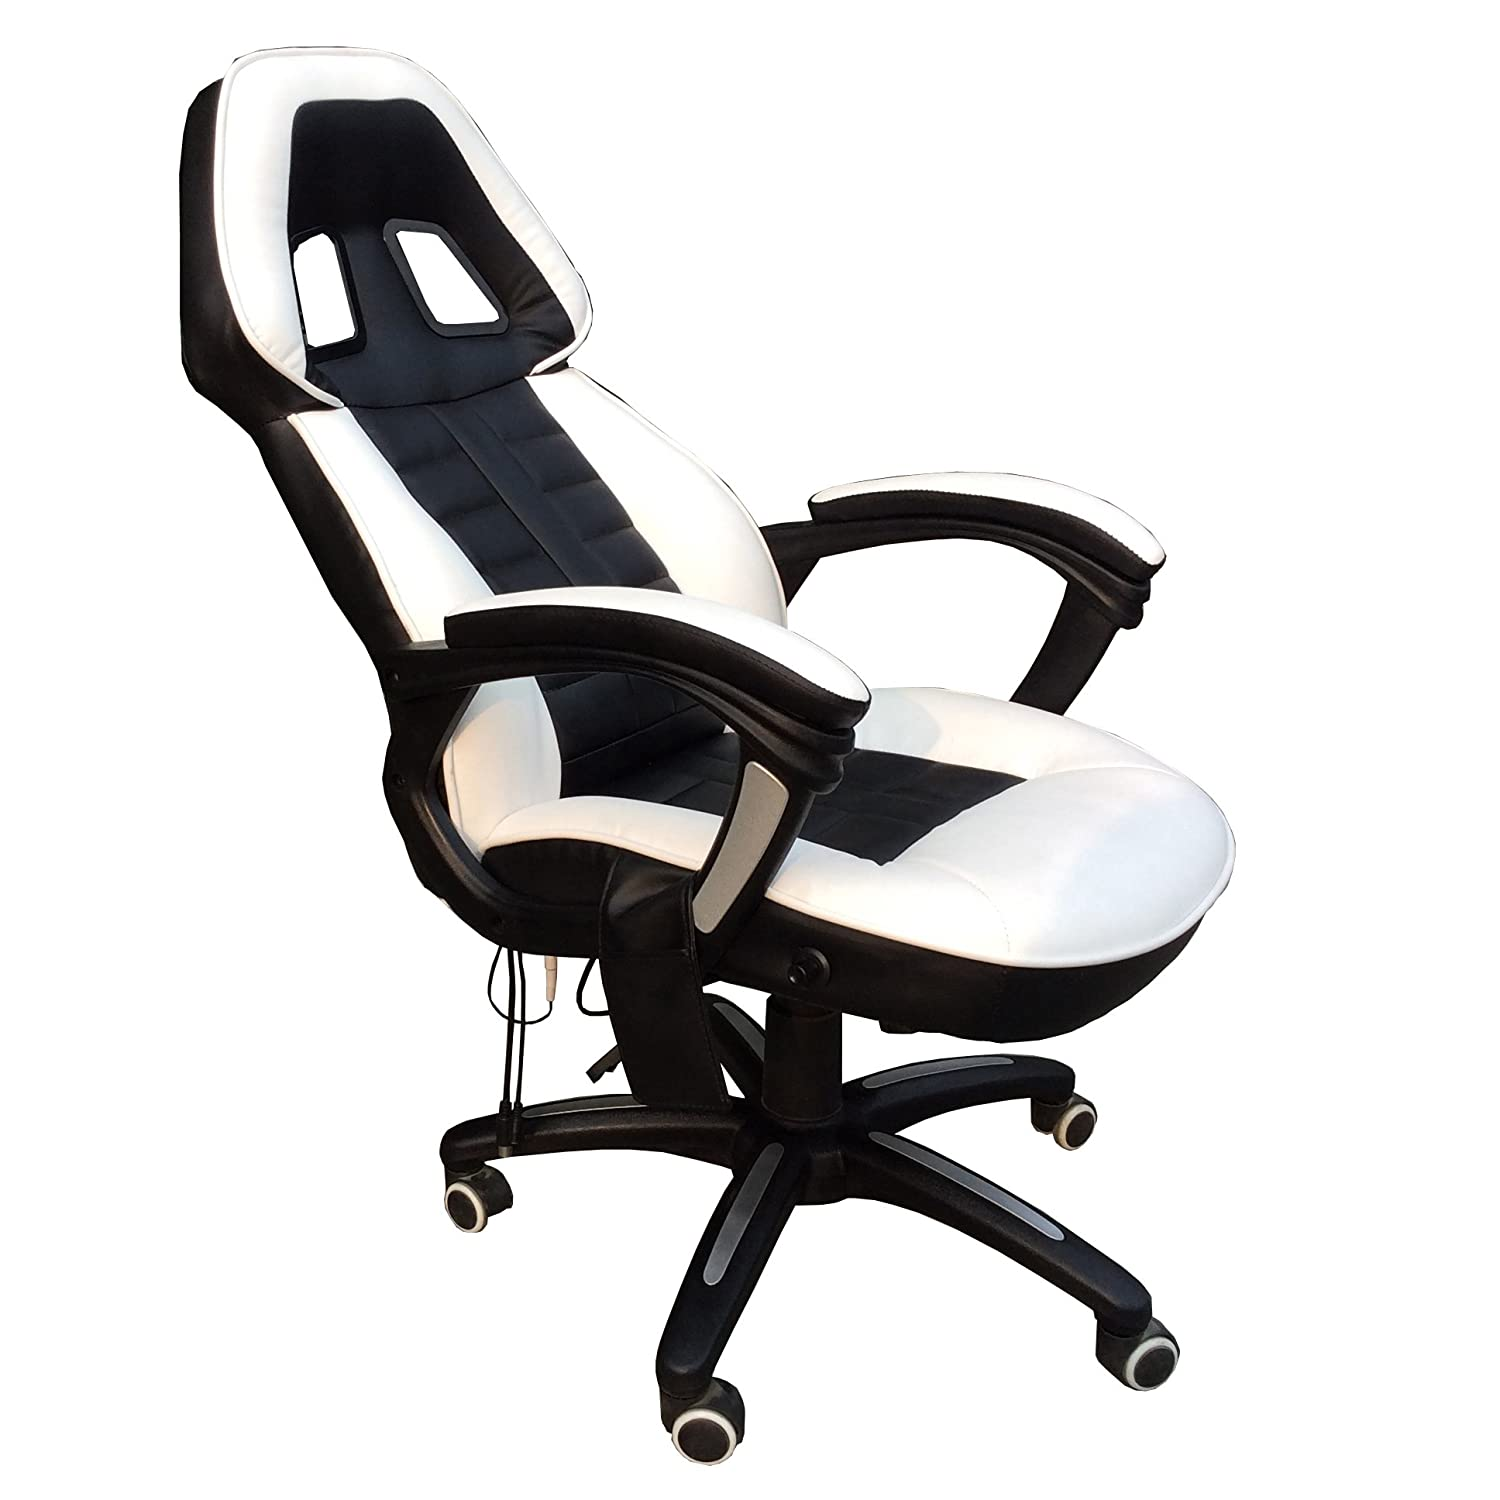 FoxHunter Luxury 6 Point Massage fice puter Chair Reclining